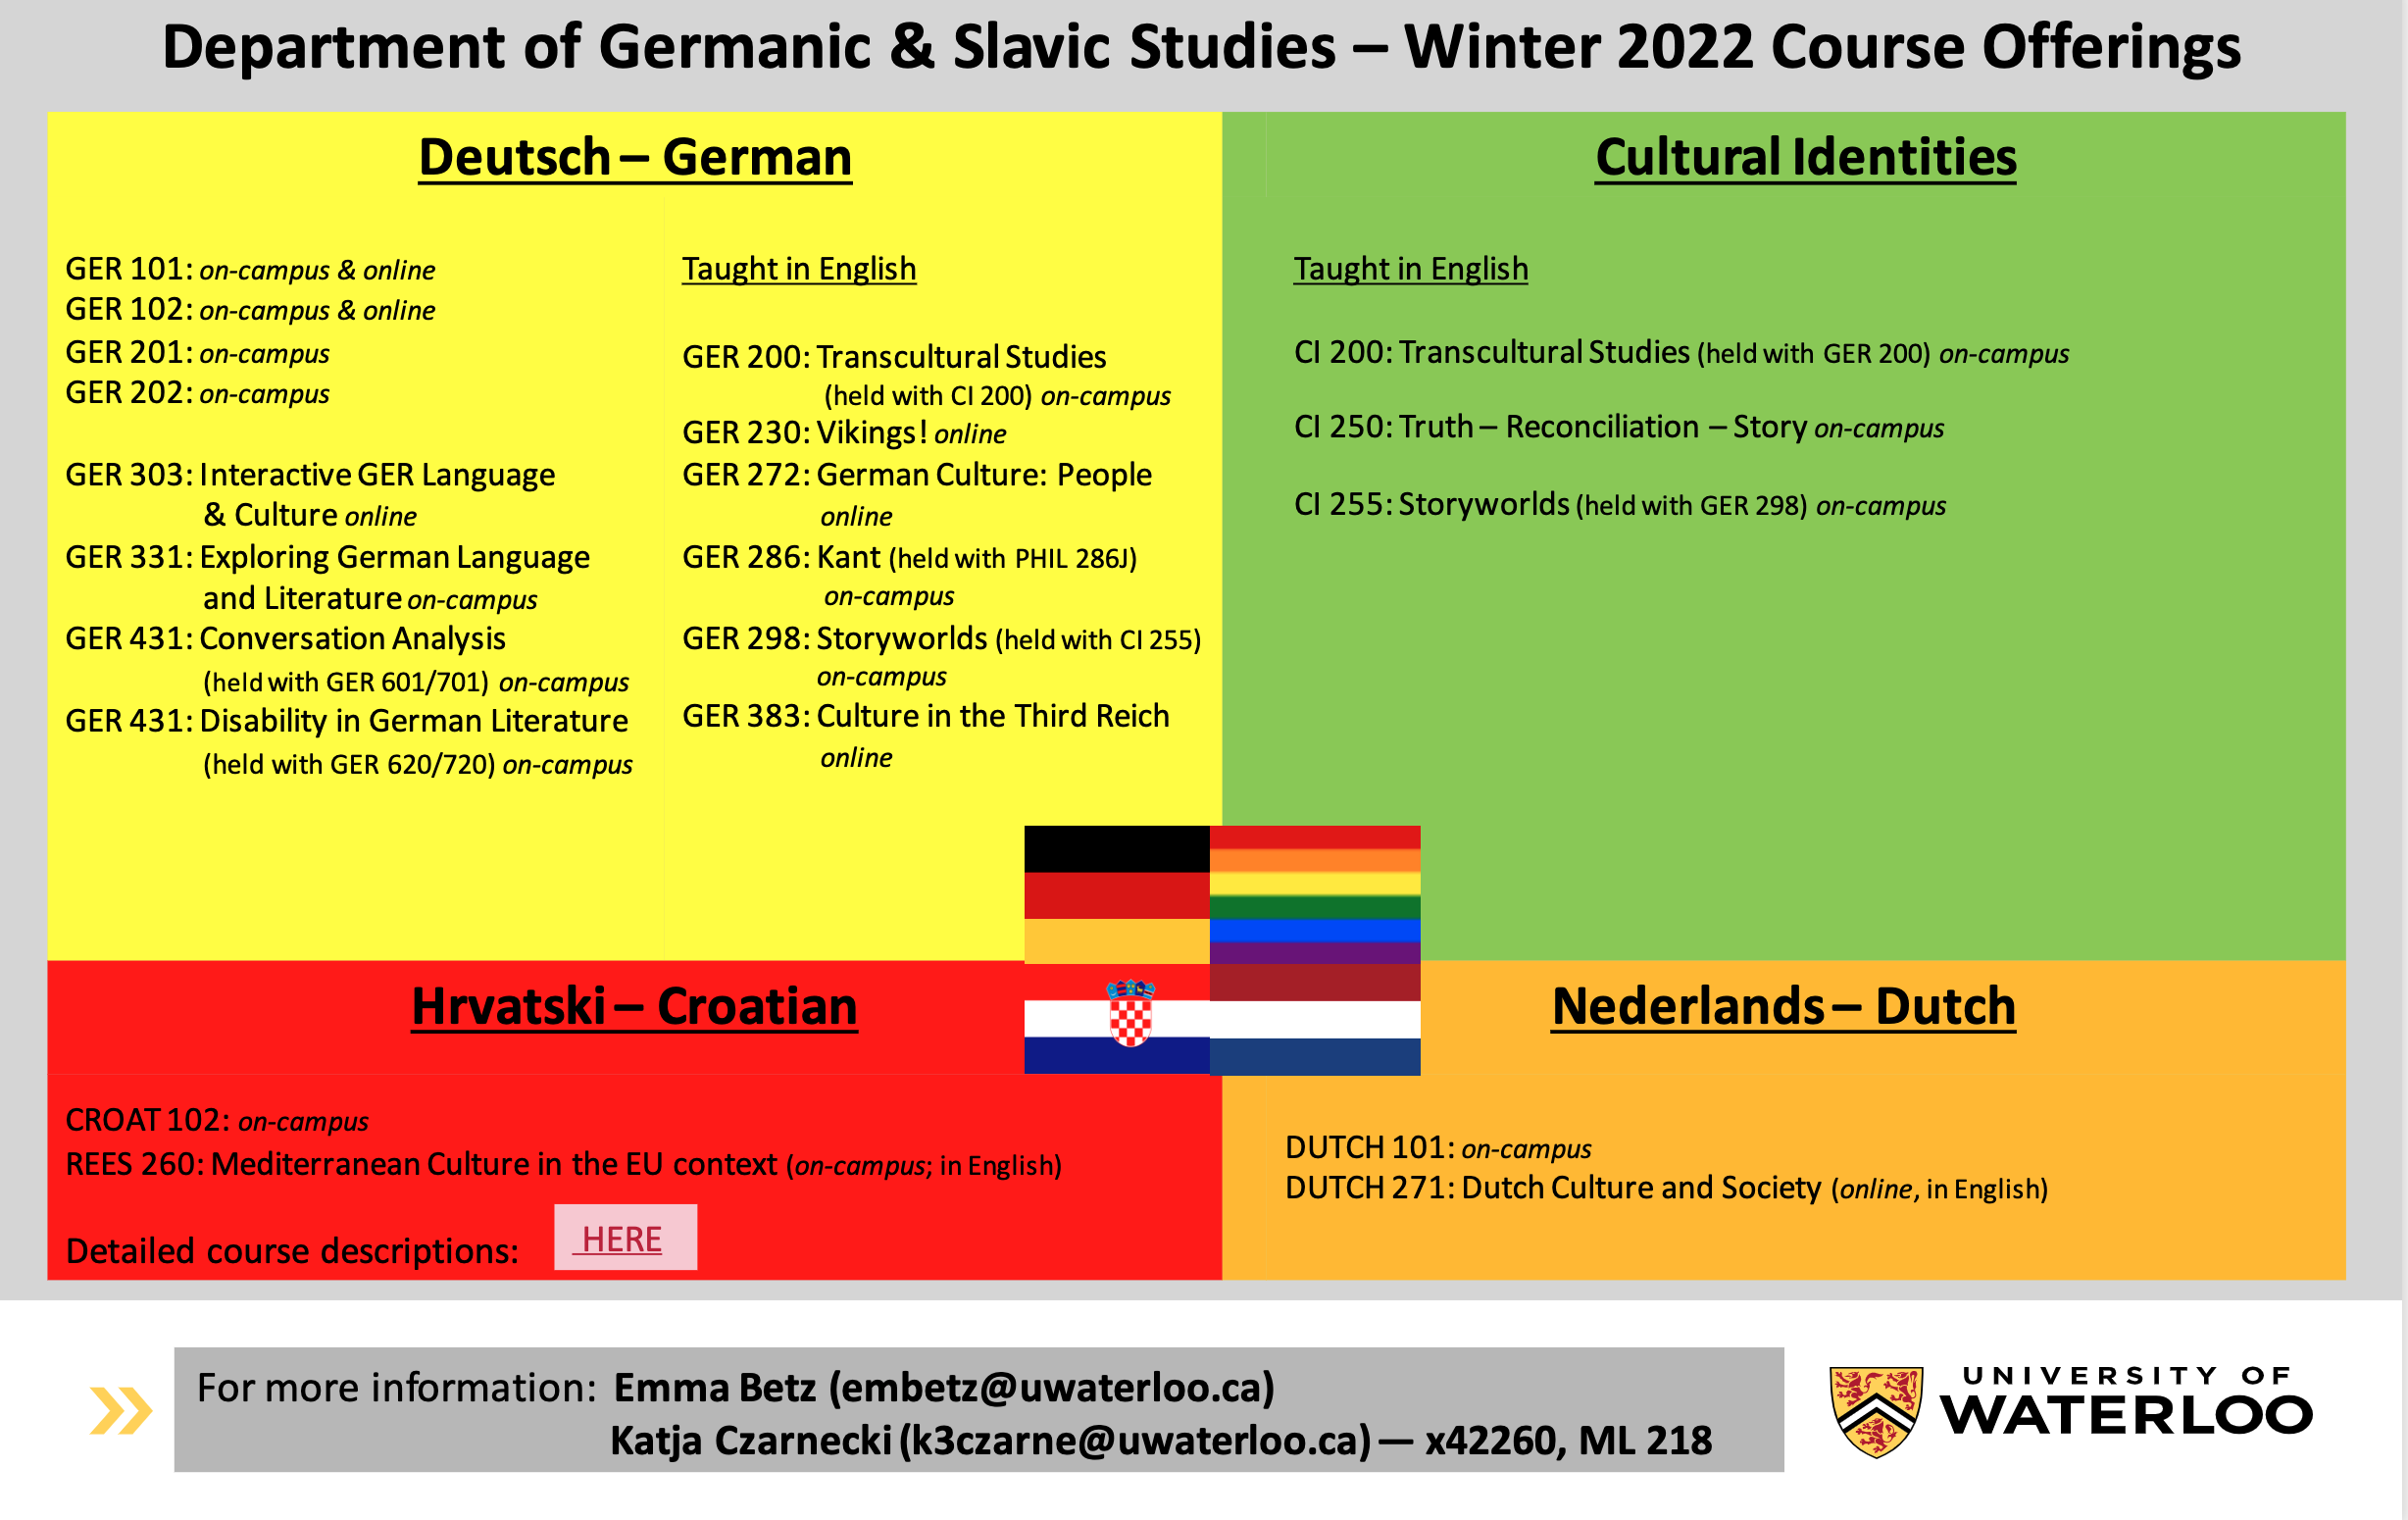 Courses offered in Winter 2022